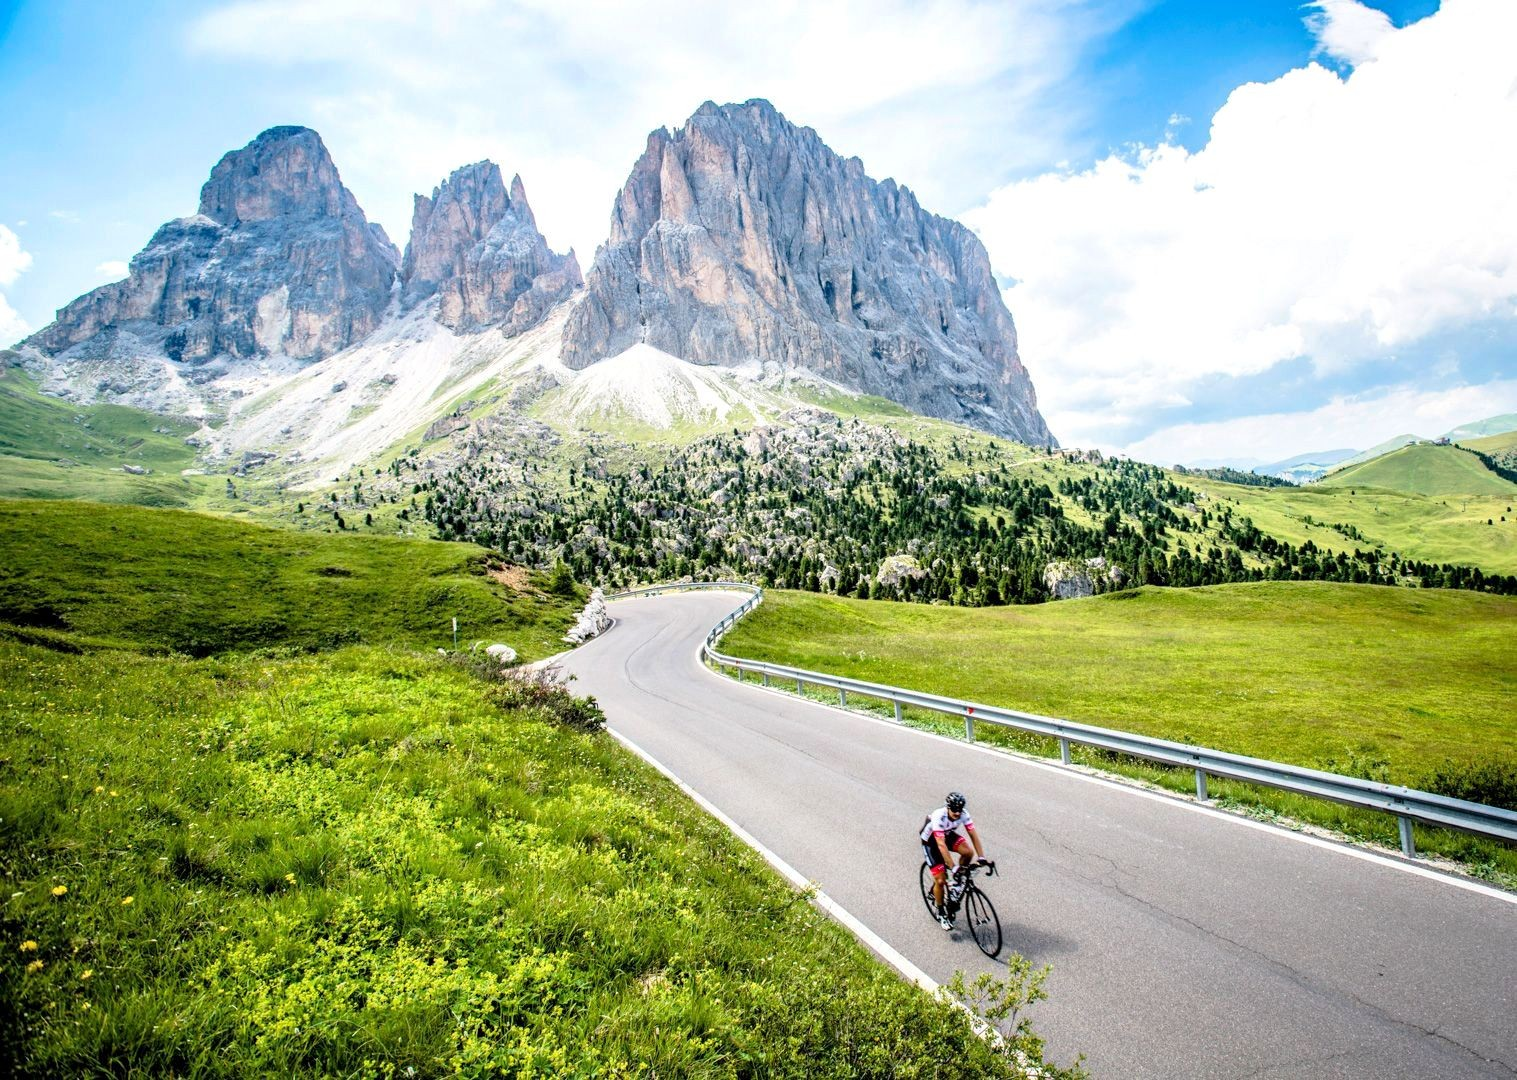 dolomites-guided-road-cycling-holiday-in-italy.jpg - Italy - Alps and Dolomites - Giants of the Giro - Guided Road Cycling Holiday - Italia Road Cycling